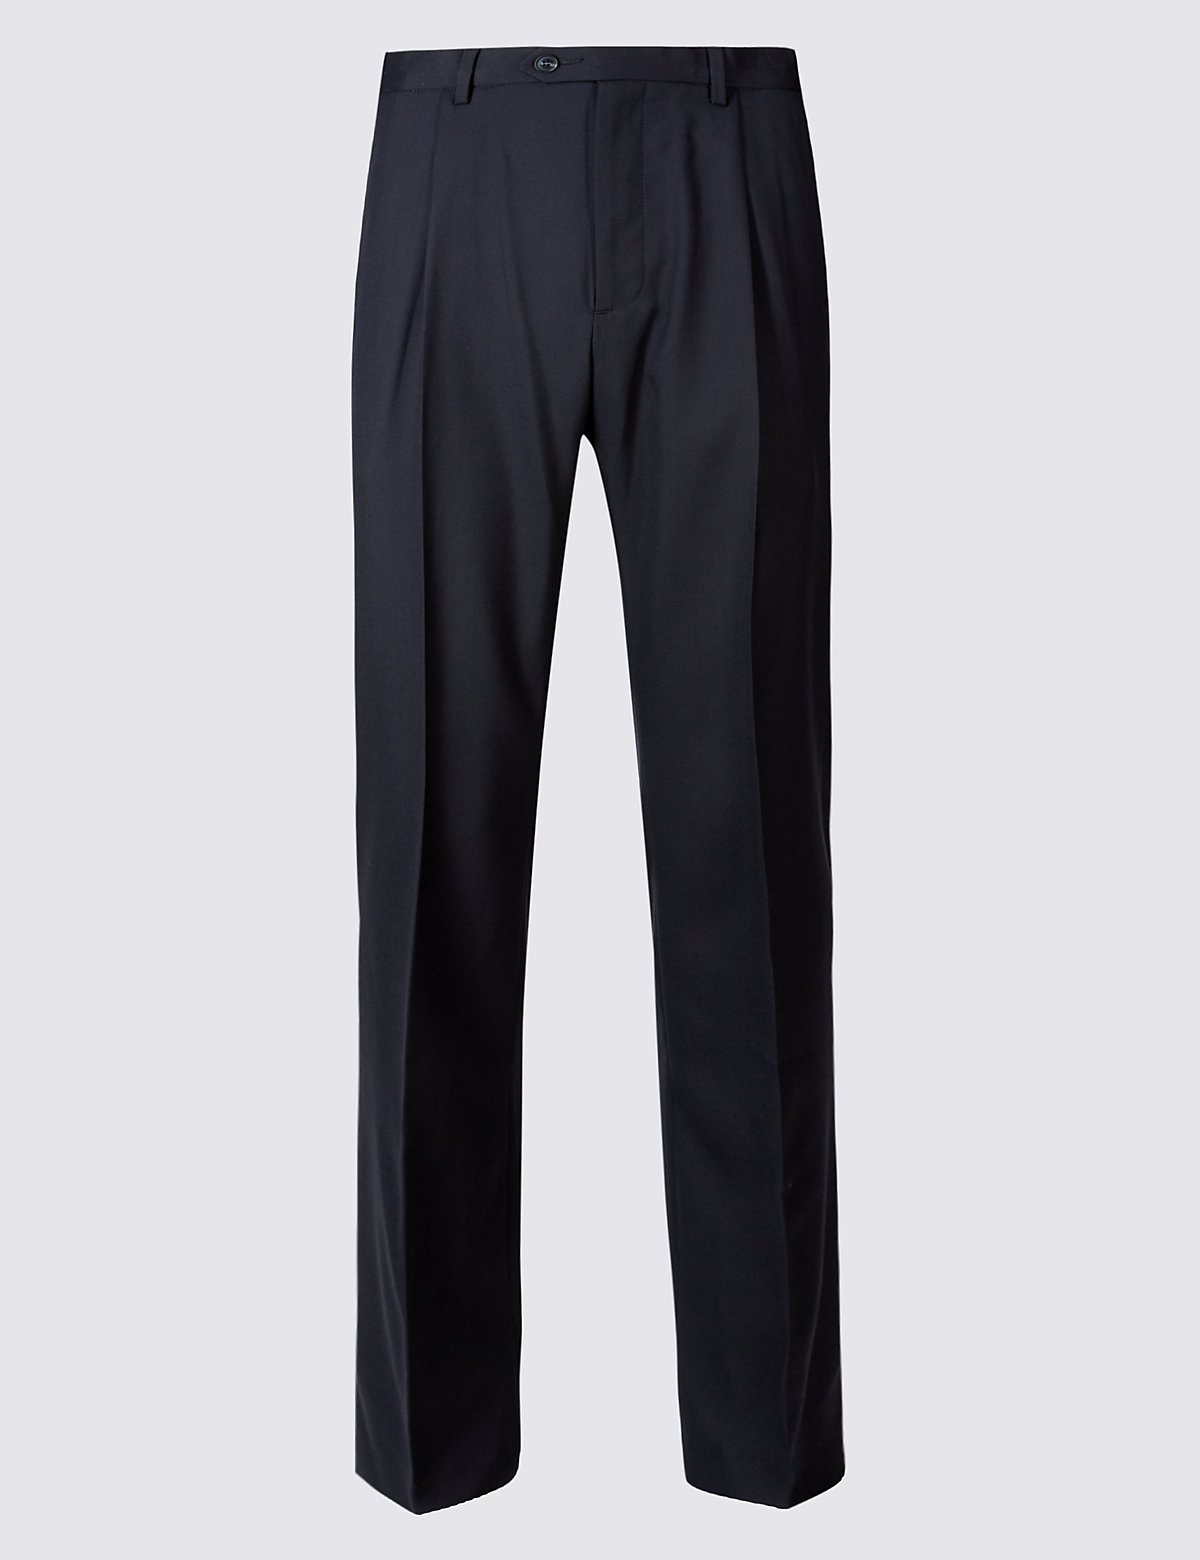 Marks & Spencer Navy Regular Fit Wool Rich Single Pleated Trousers